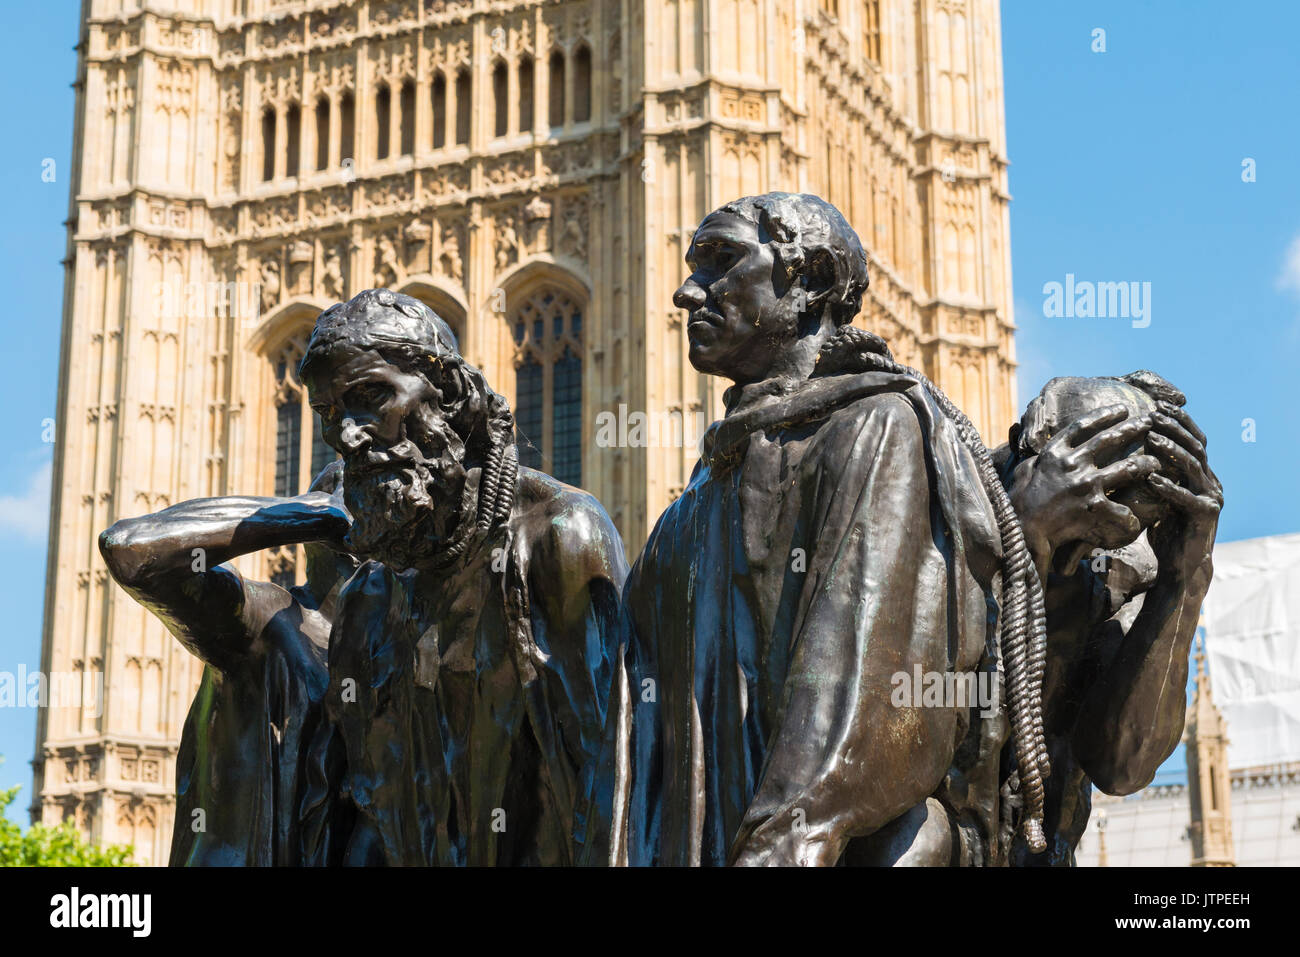 The Burghers of Calais statue sculpture bronze Auguste Rodin Victoria Tower Gardens Palace of Westminster Houses of Parliament 1884 - 89 - Stock Image